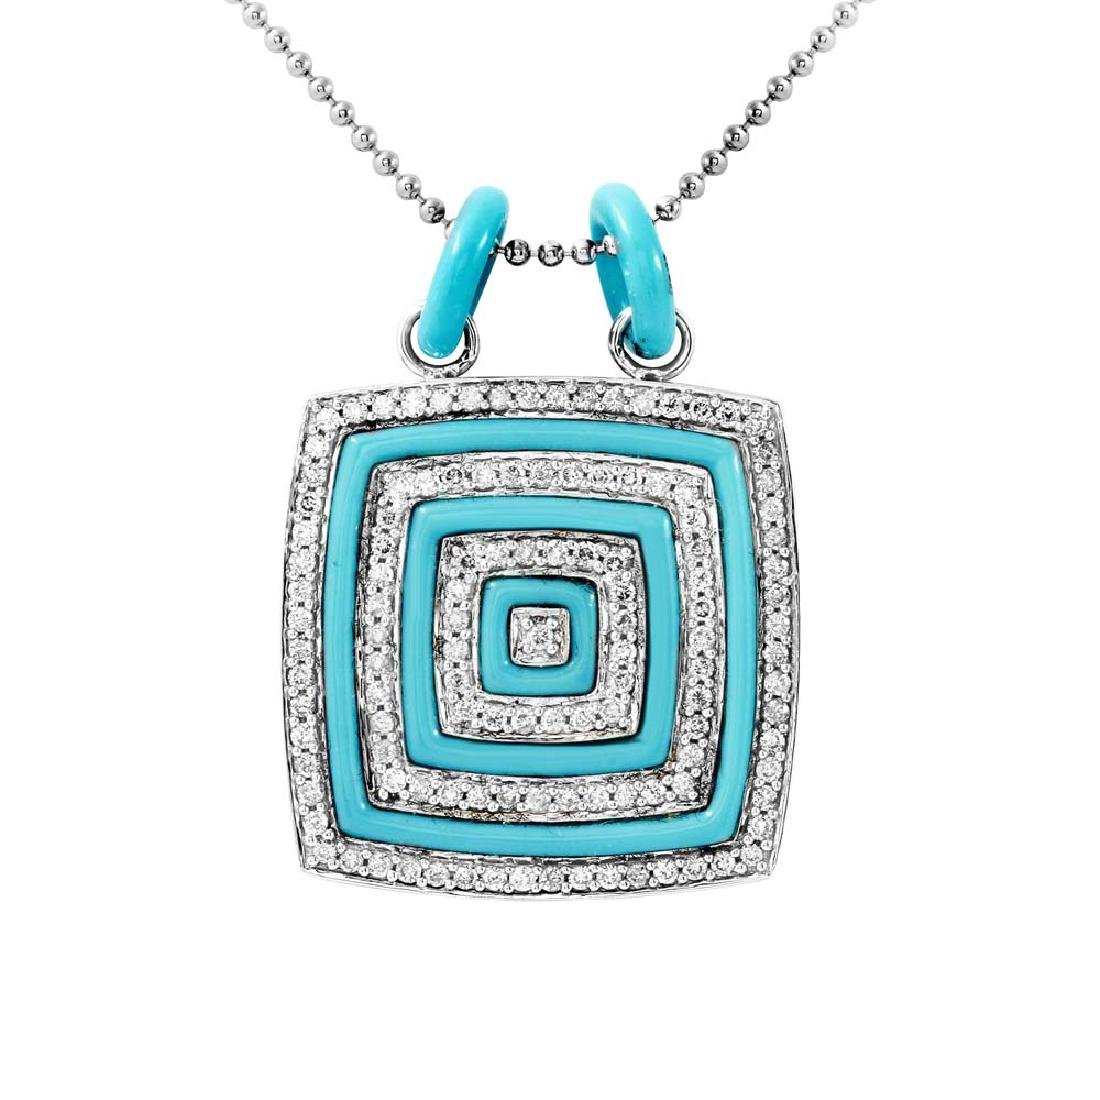 14K Gold 3.89 CTW Turquoise & Diamond Necklace